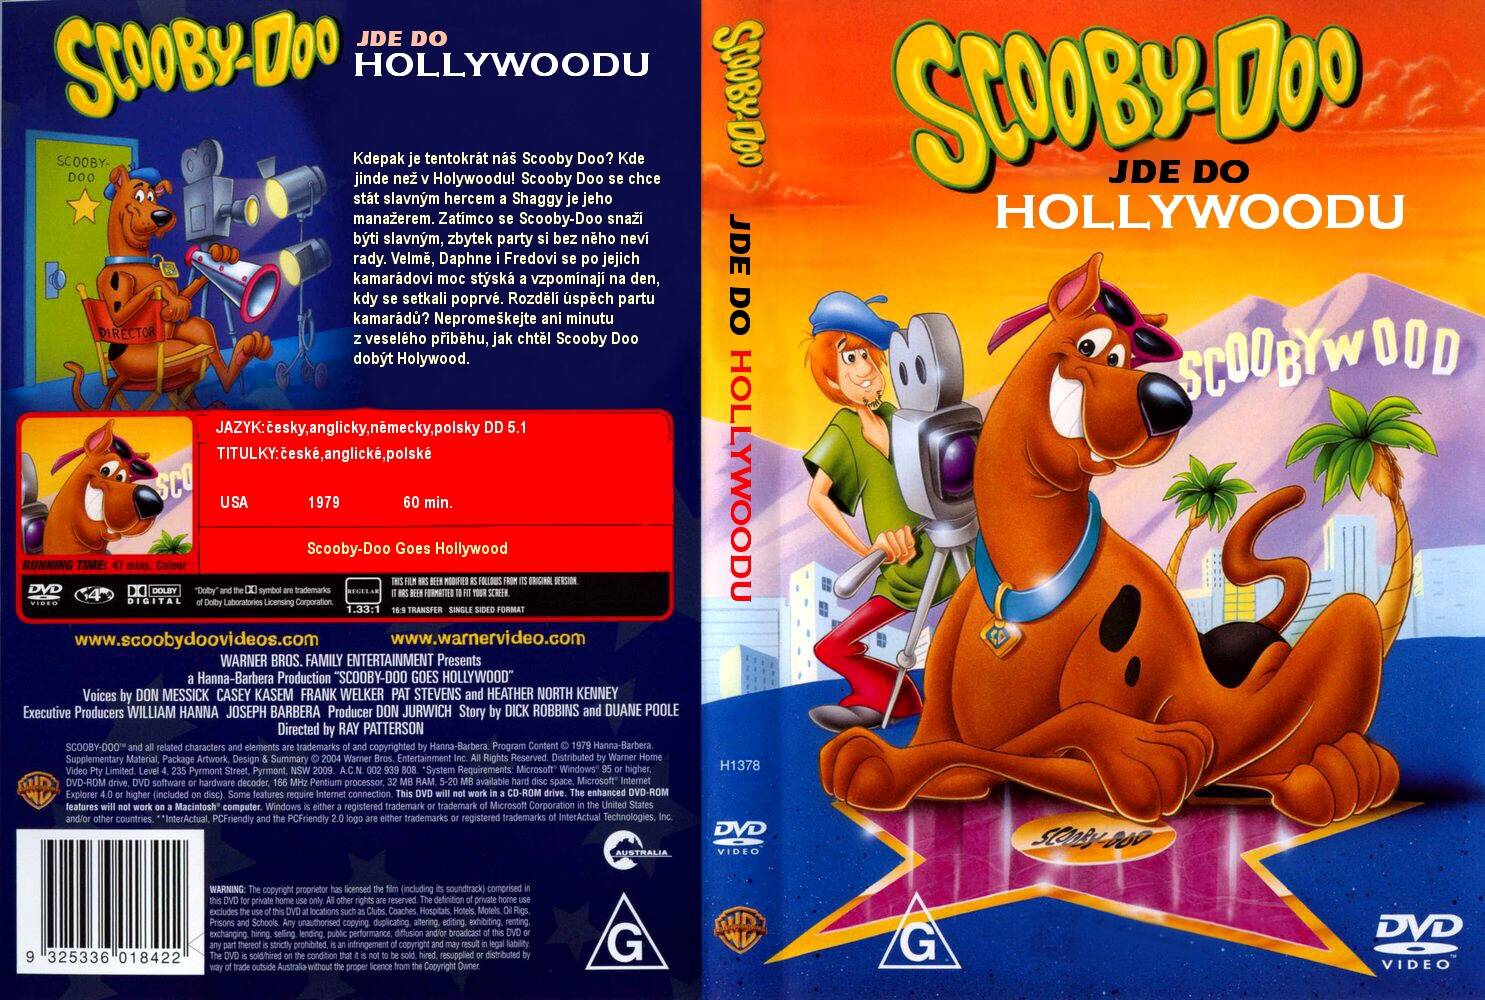 Scooby Doo jde do Hollywoodu